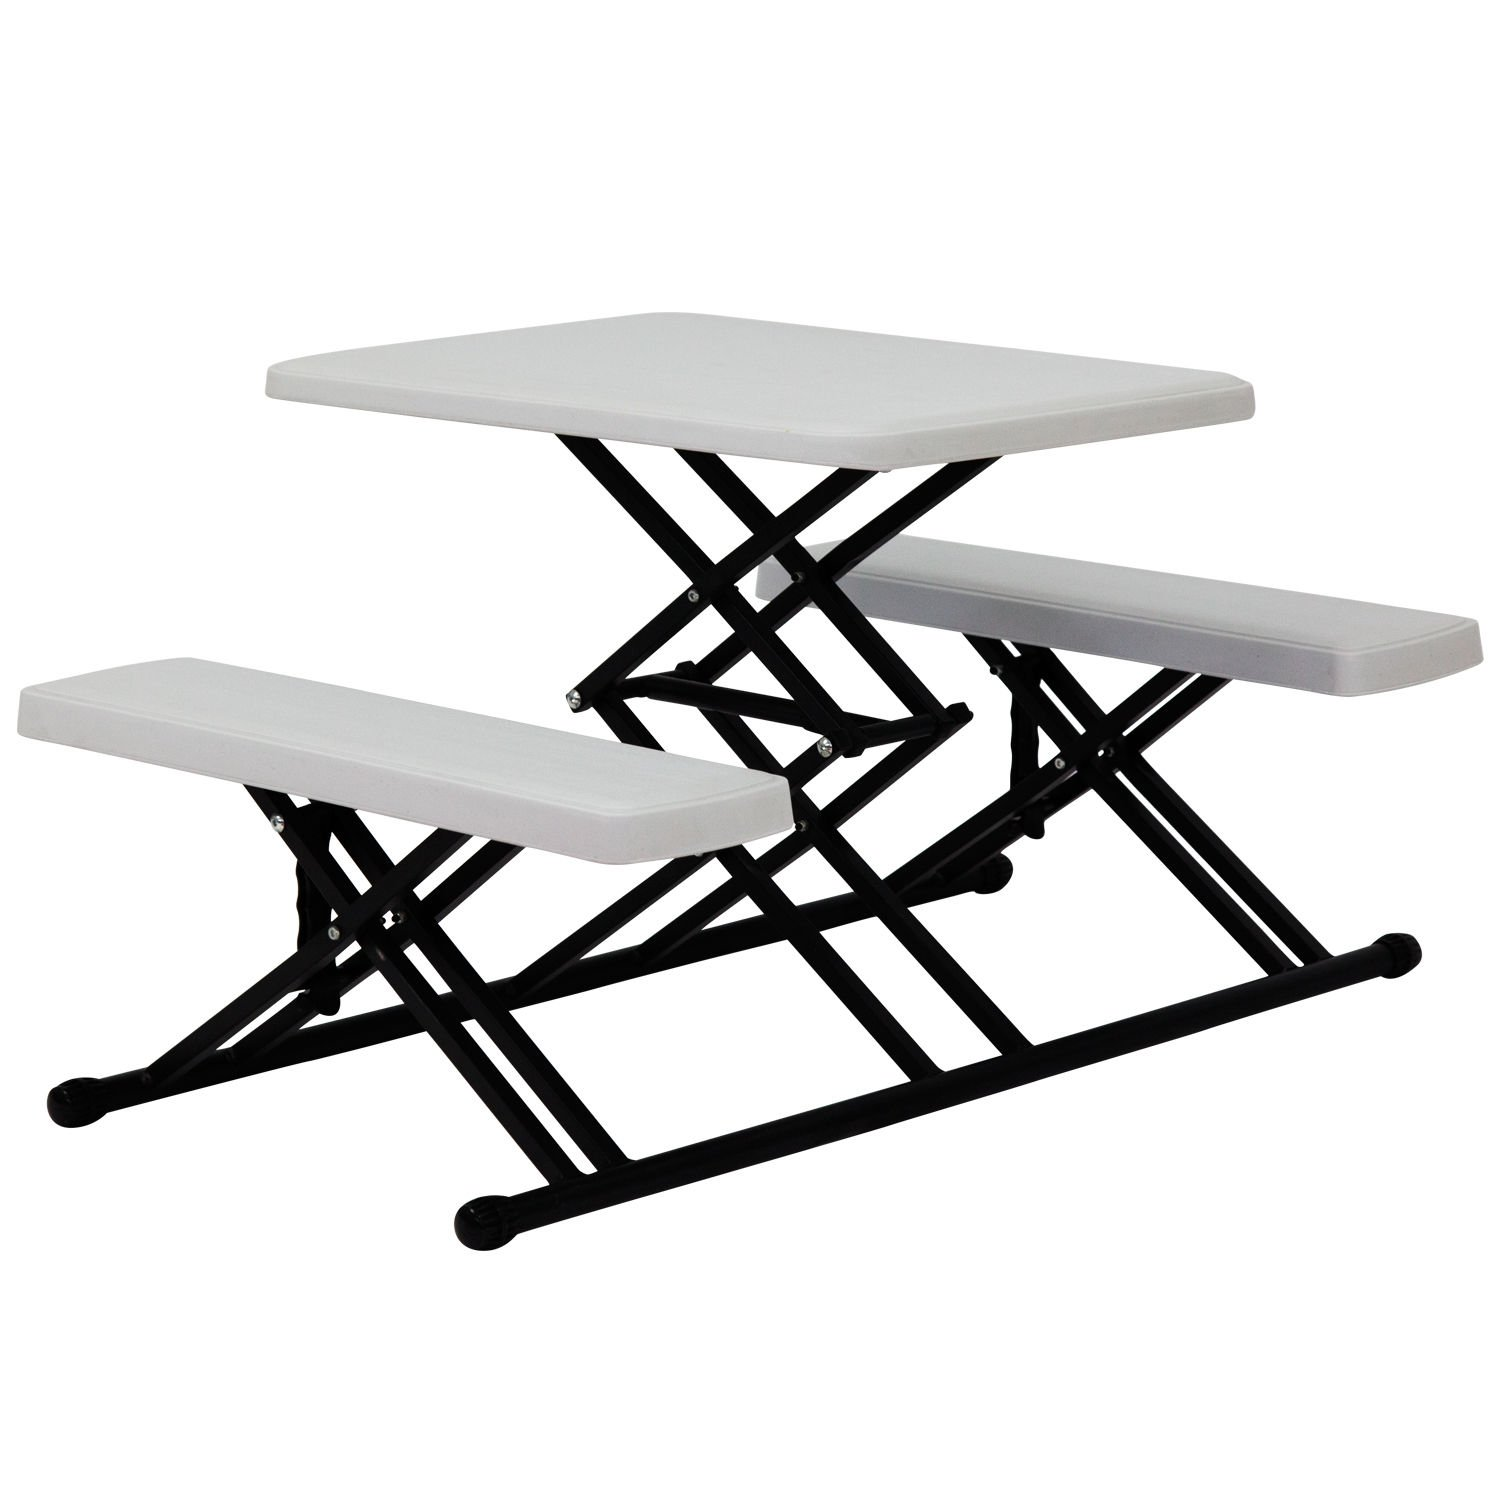 Kids Portable Folding Table and Chairs Set Plastic Camping Picnic Lawn + FREE E-Book